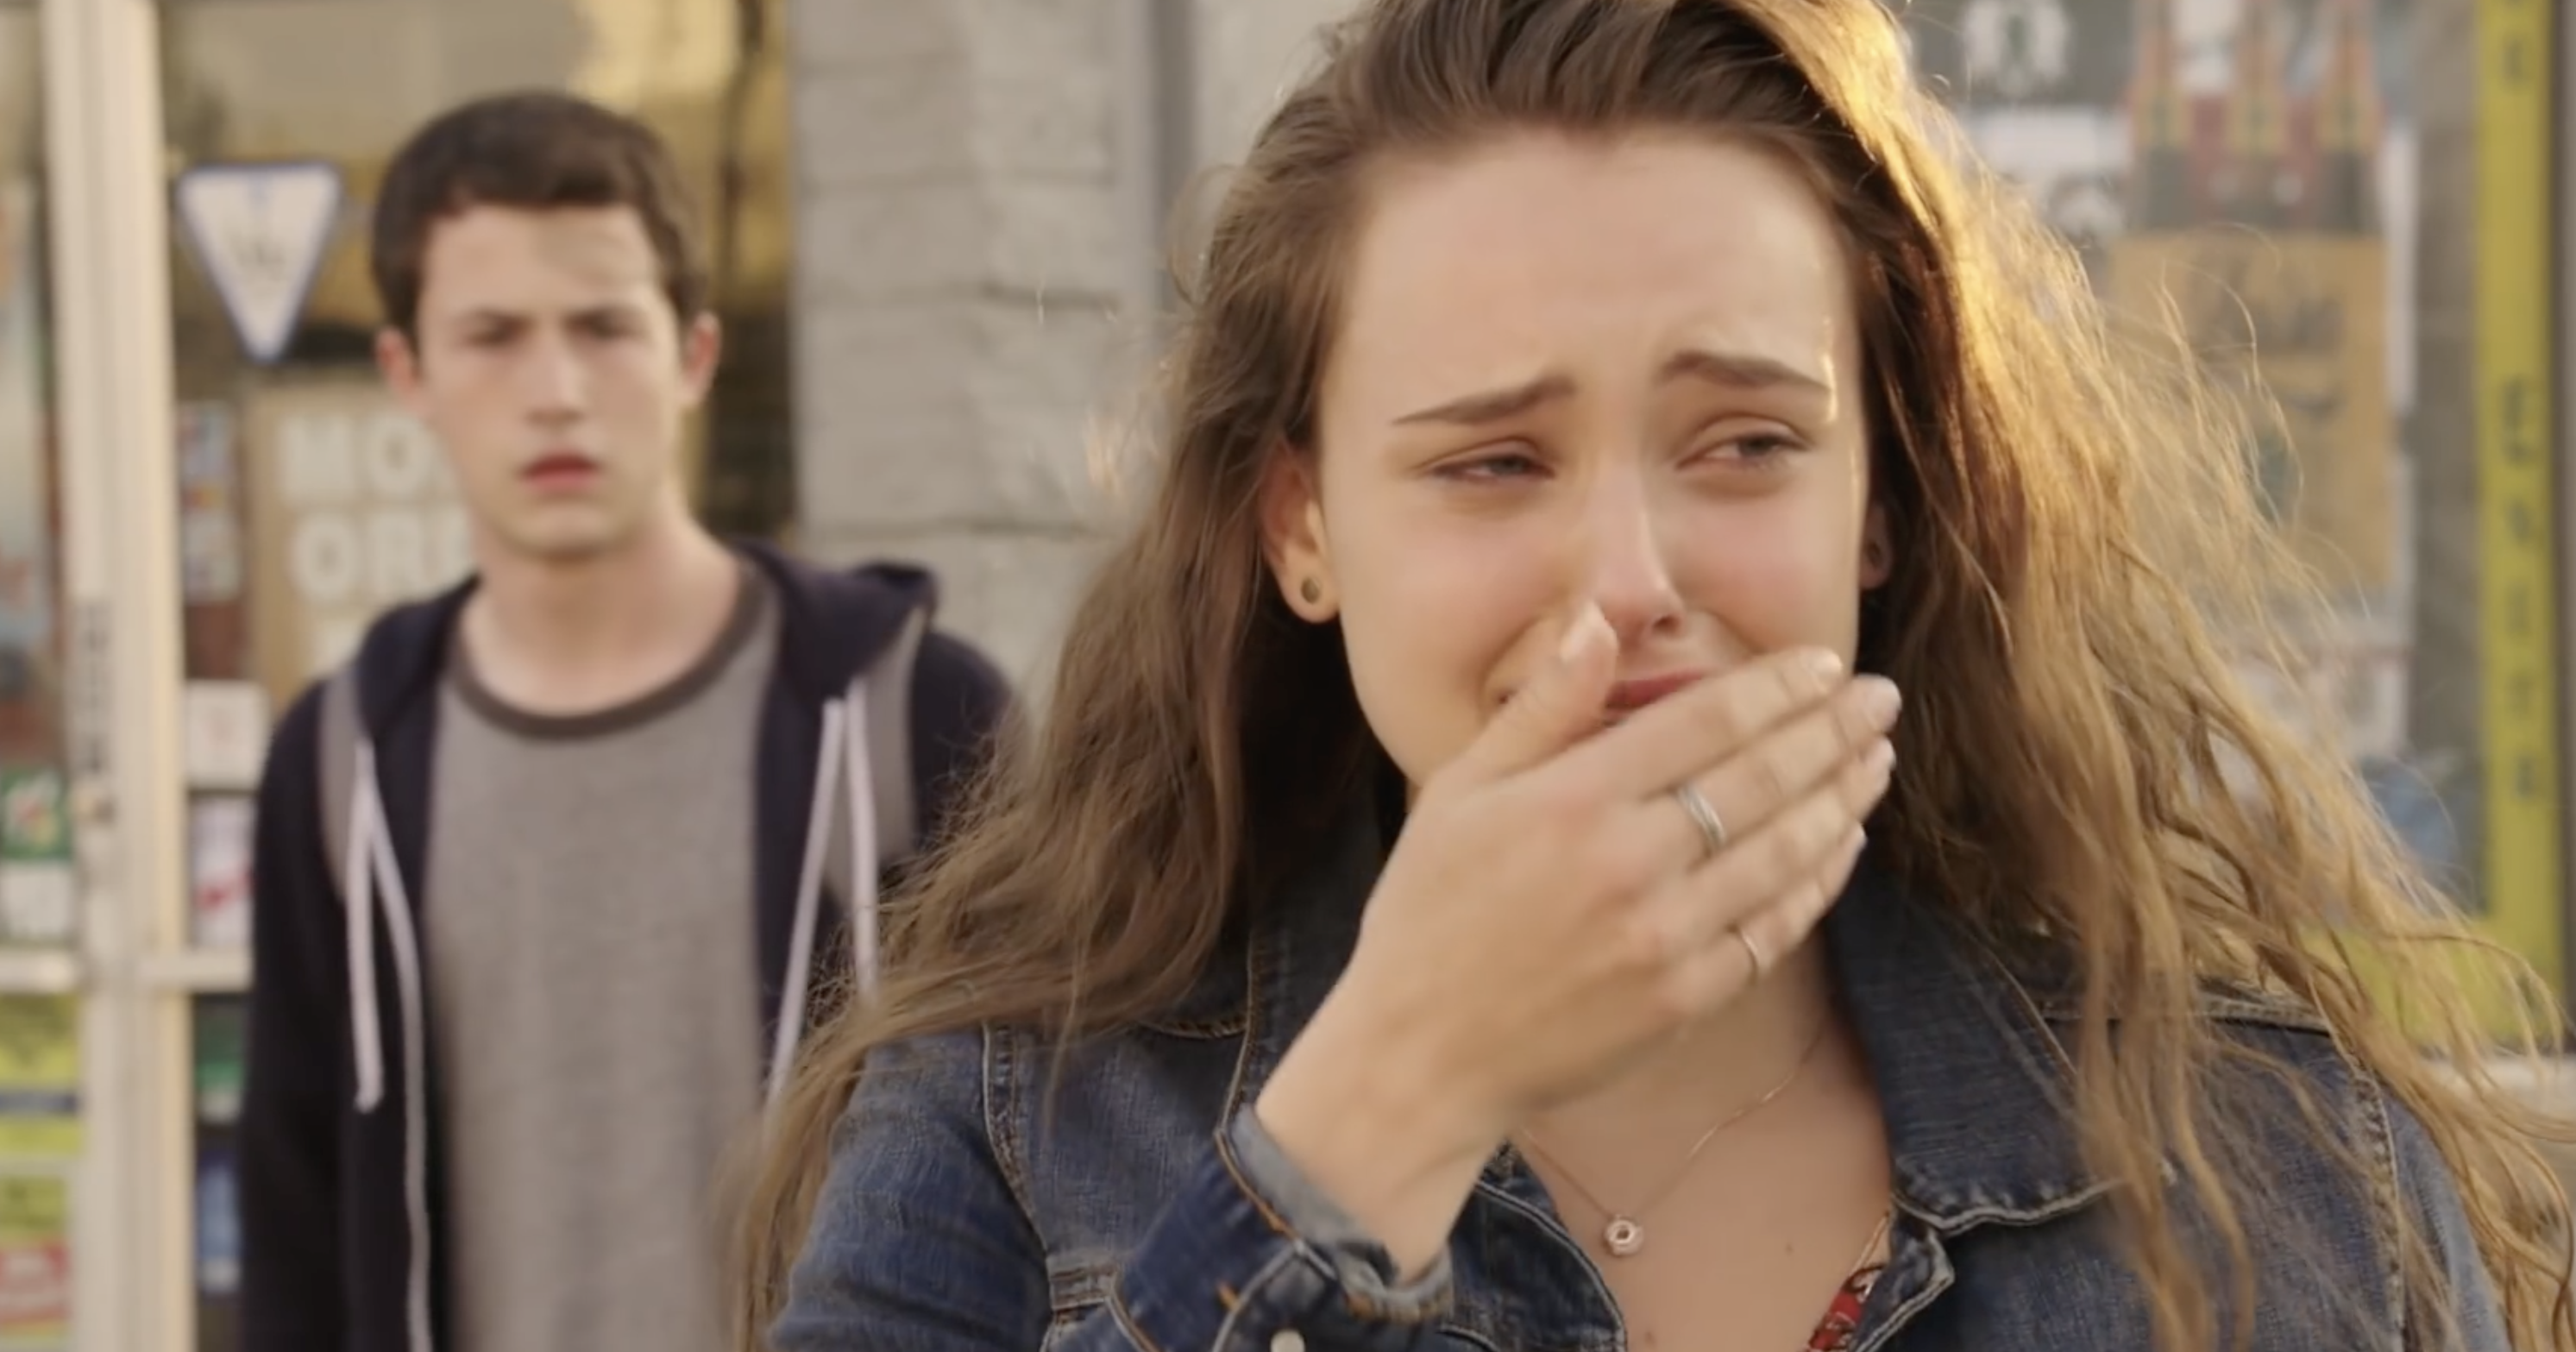 A Parent's Take On '13 Reasons Why'